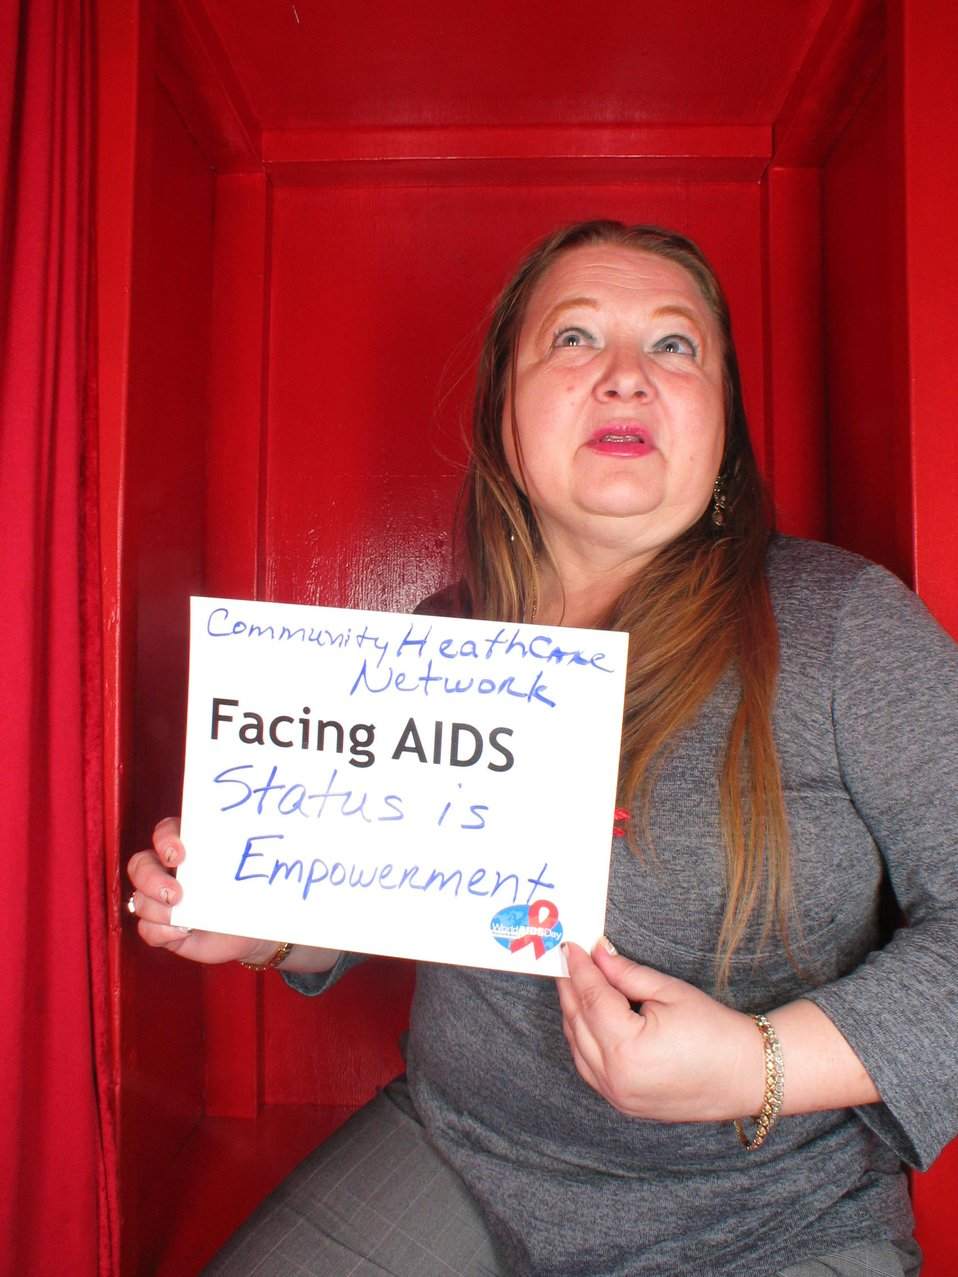 Facing AIDS Status is empowerment